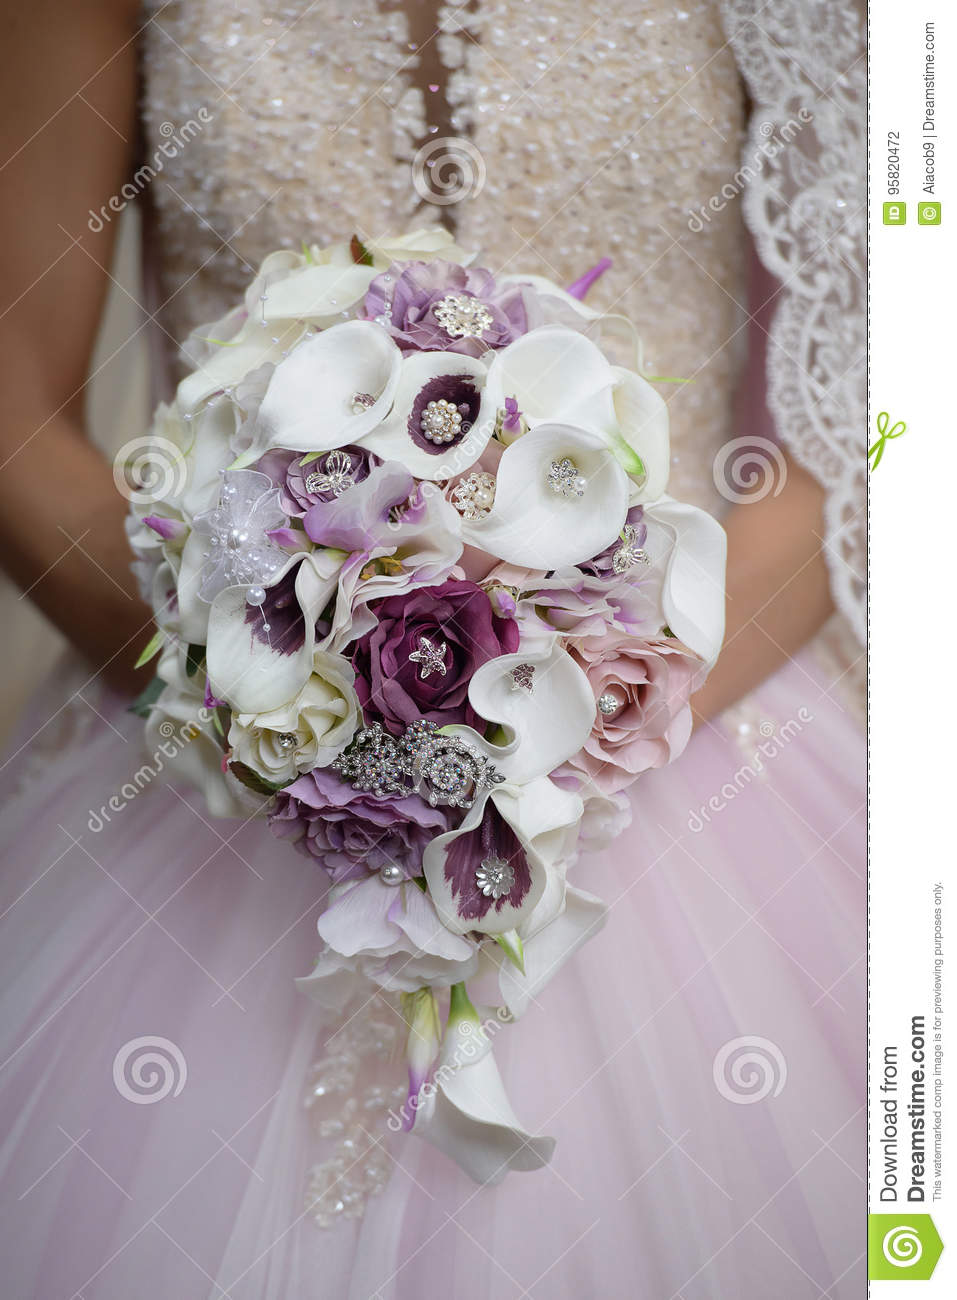 Bride Holding Wedding Bouquet Featuring Calla Lilies With Purple